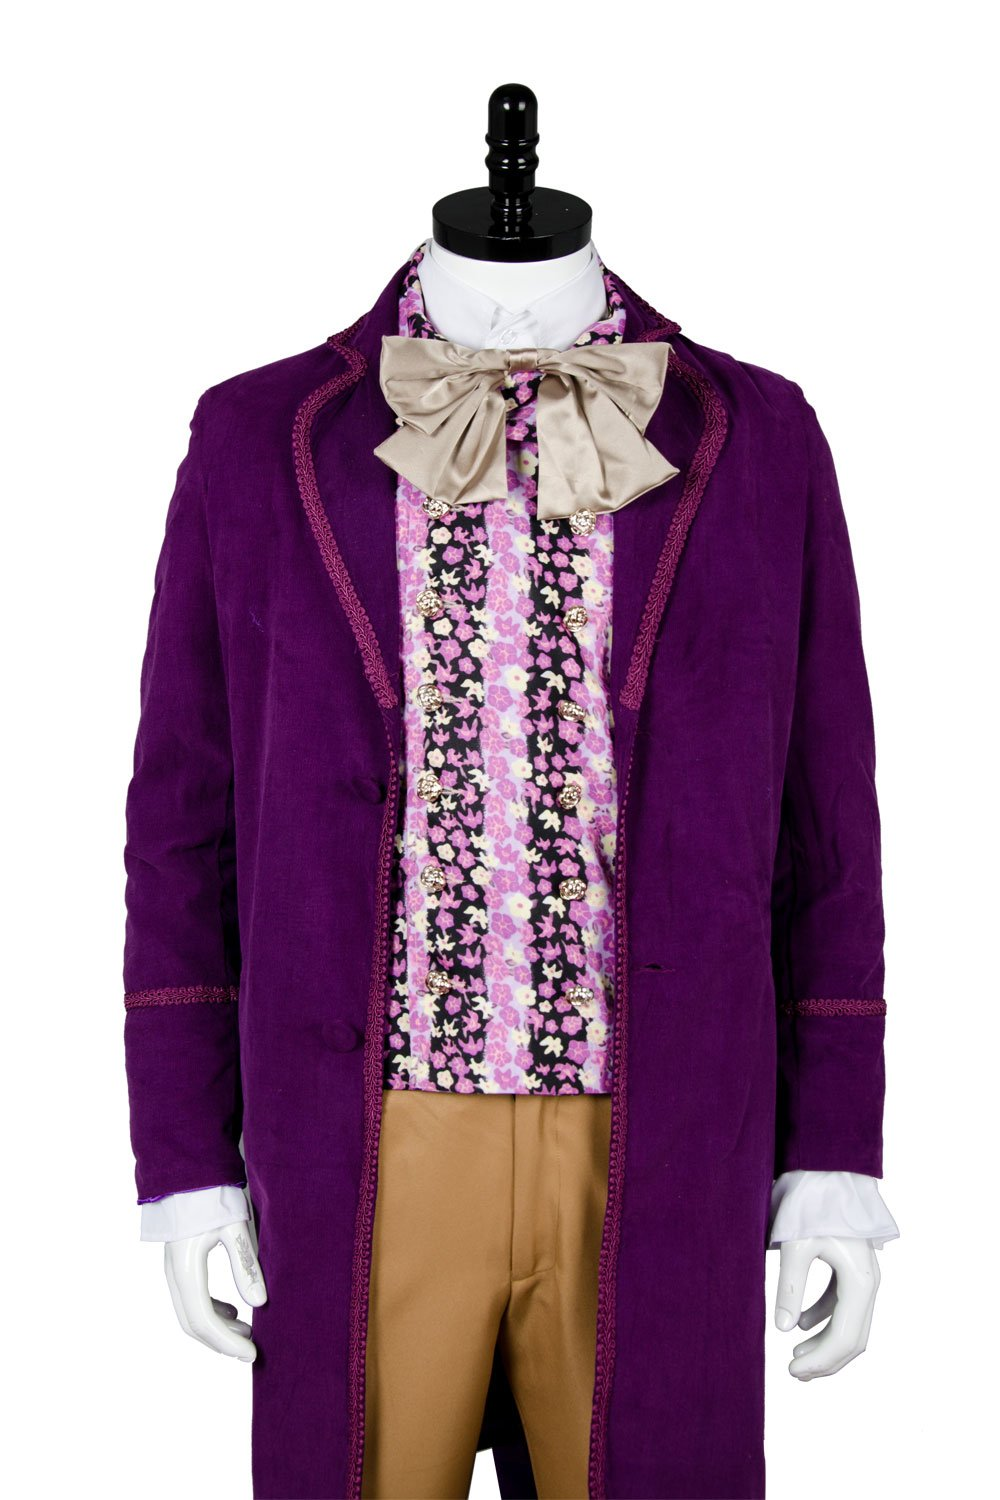 NoveltyBoy Willy Wonka Charlie and the Chocolate Factory Red Johnny Depp Purple Coat Vest Tie Set Costume